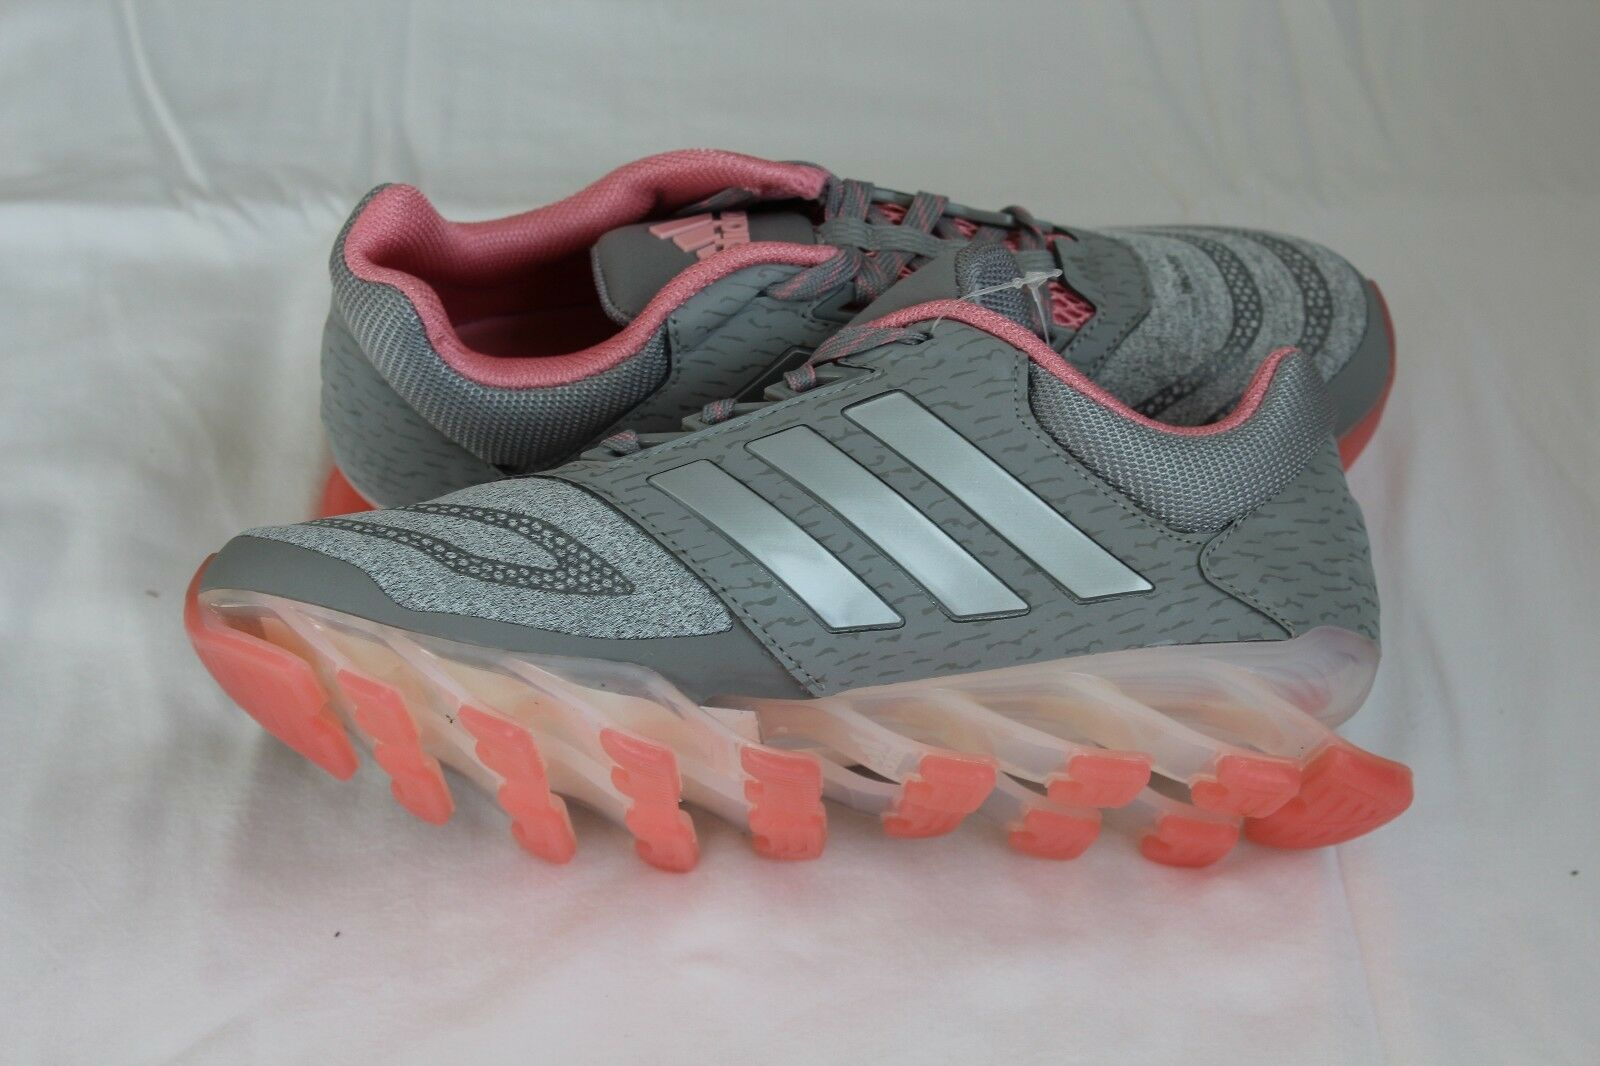 ADIDAS LADIES SPRINGBLADE DRIVE 2 6 TRAINERS UK 3.5 - 6 2 98d20d